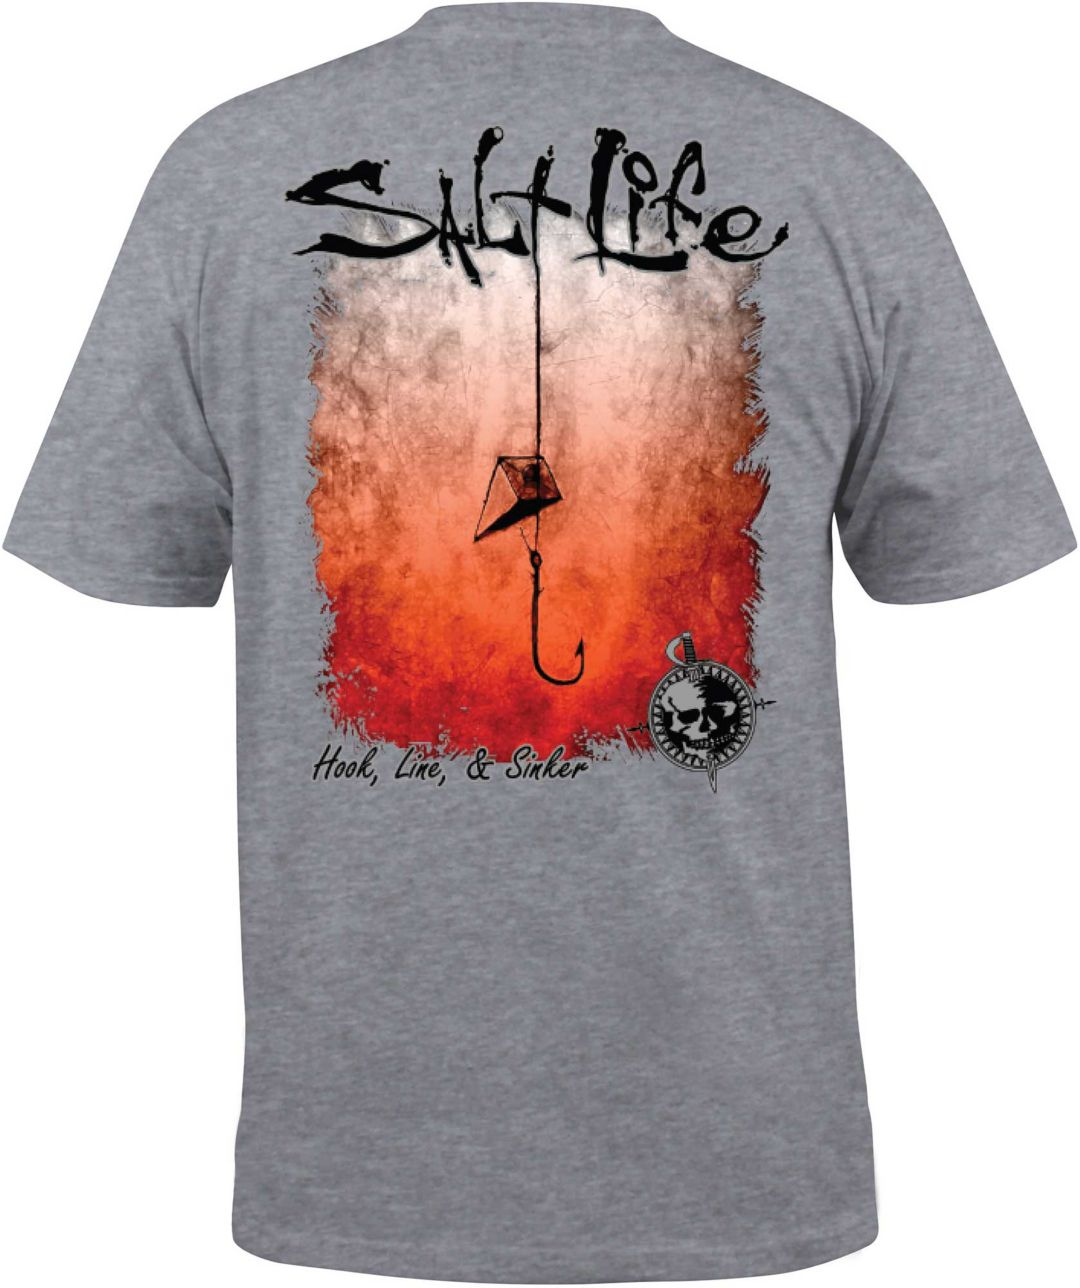 8aceb317bff9 Salt Life Men's Hook Line and Sinker Fade T-Shirt | DICK'S Sporting ...